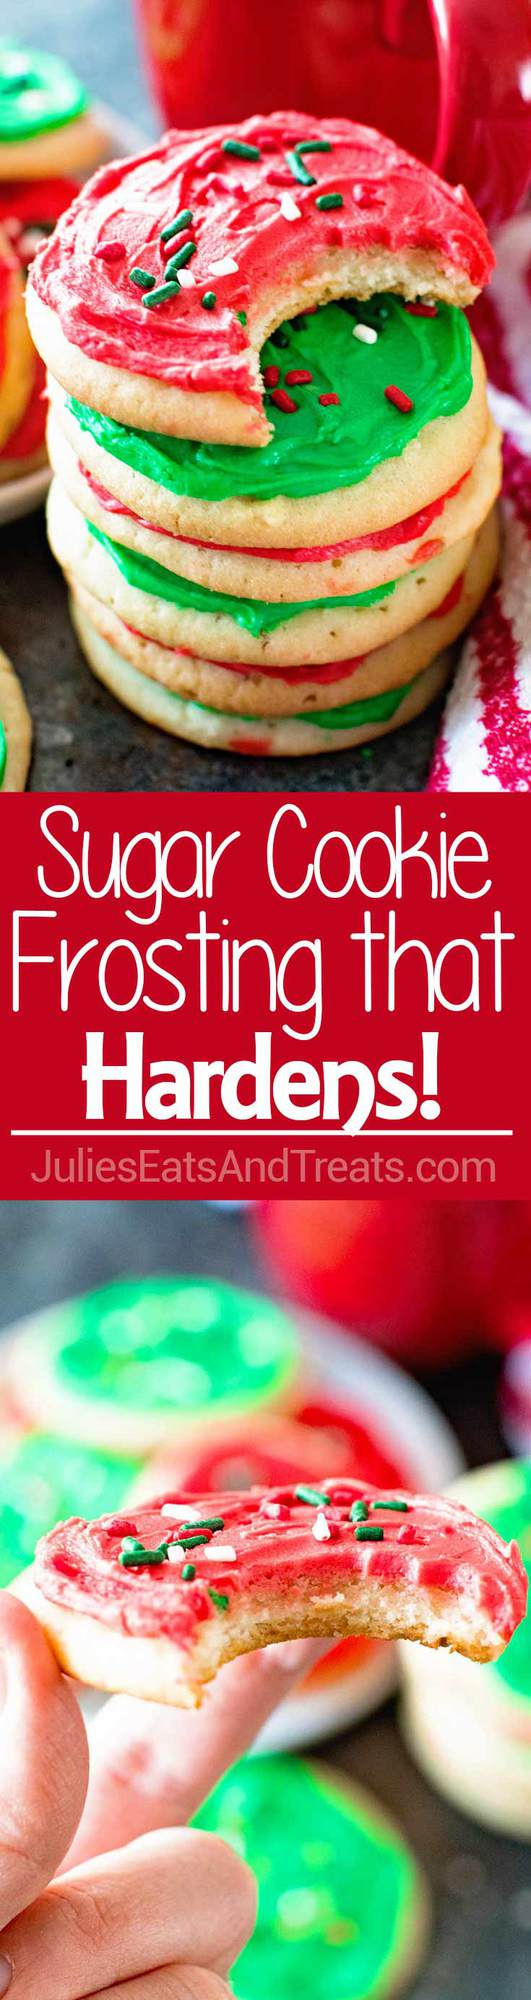 Homemade Sugar Cookie Frosting that Hardens ~ The Perfect Sugar Cookie Frosting for Decorating! If You Are Looking for Frosting For Sugar Cookies that Hardens this is it!